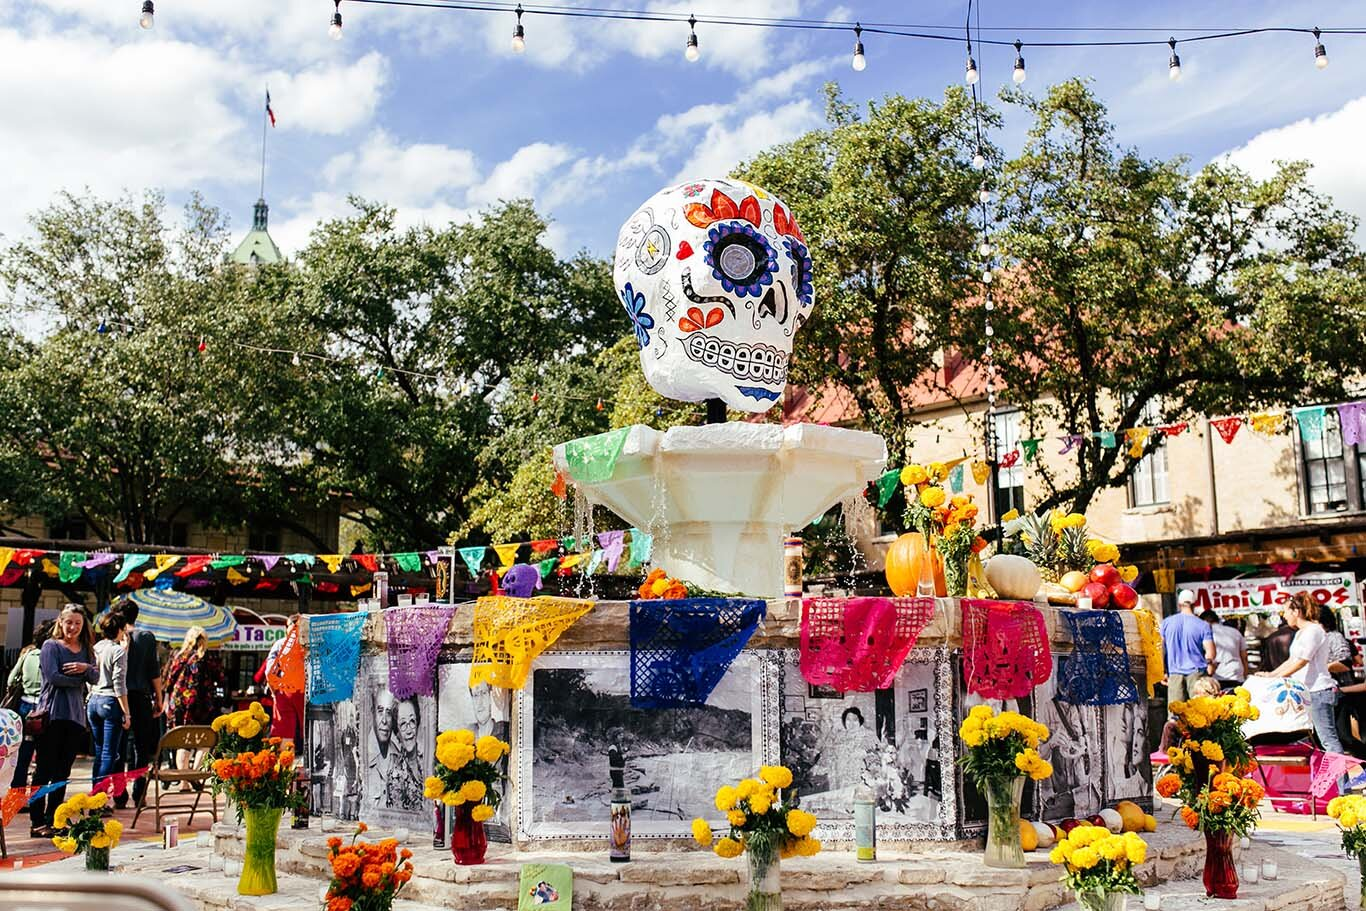 Día De Los Muertos - San Antonio - October 26 & 27This colorful festival in San Antonio celebrates Day of the Dead. Visitors can learn and experience the culture of this beautiful festival with live music, entertainment, food, and San Antonios largest open alter exhibition.